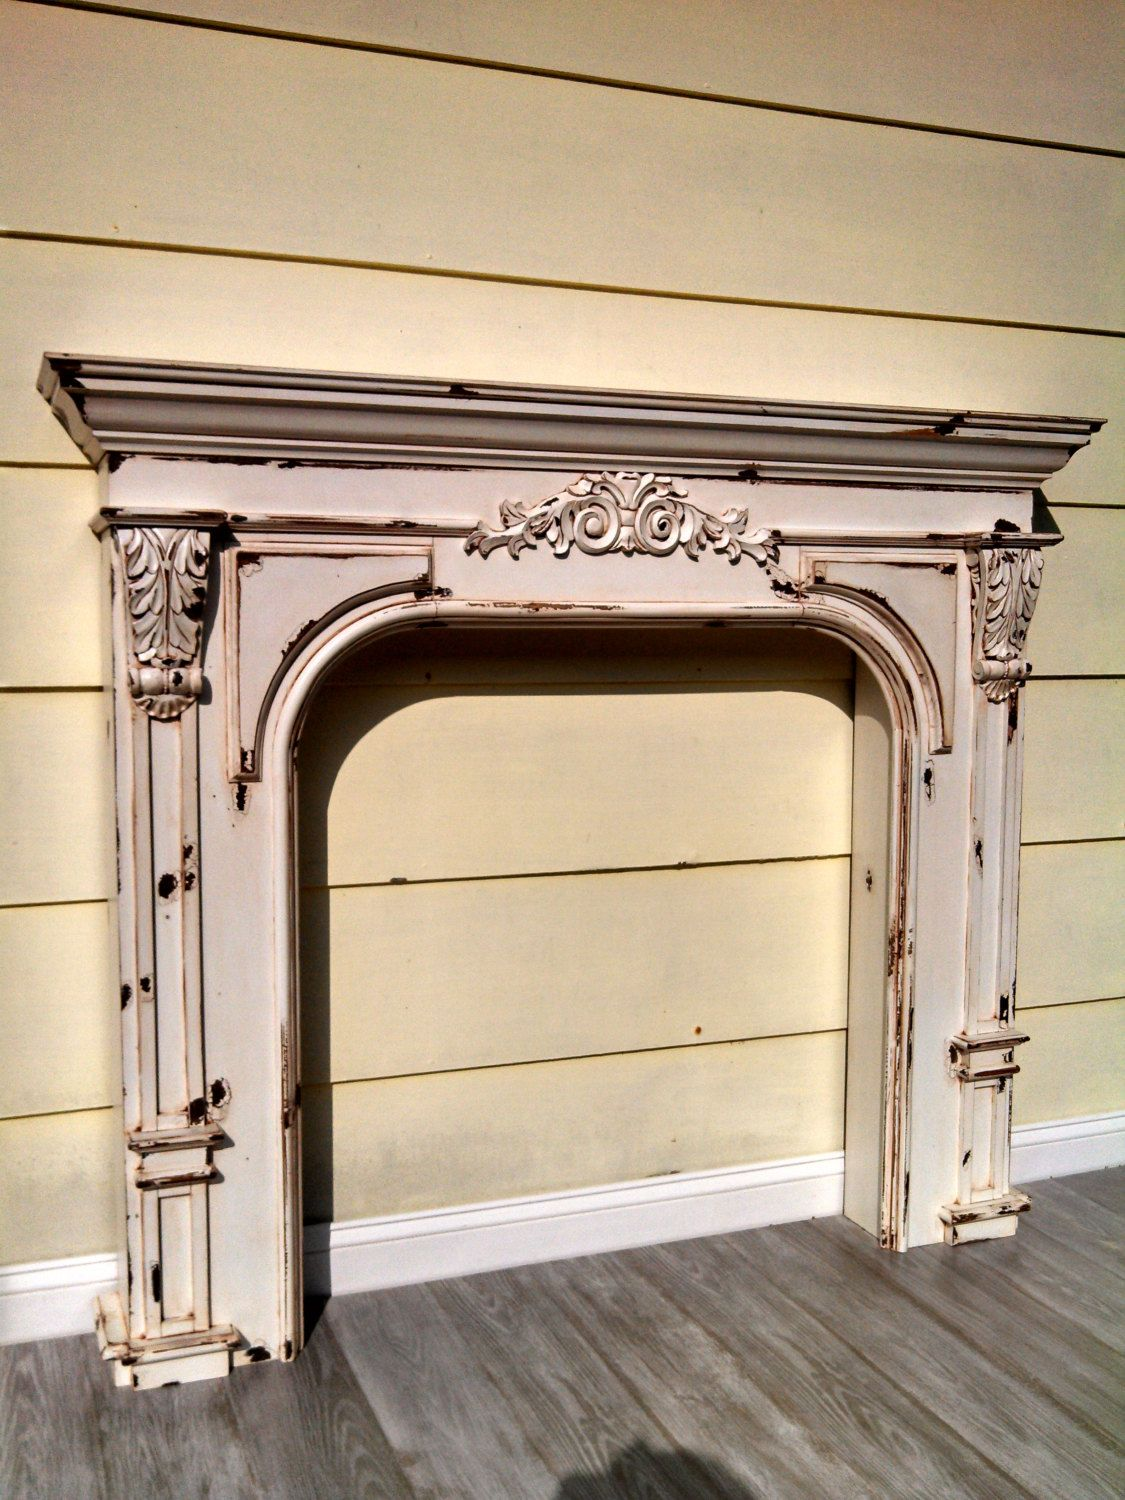 Vintage French Country Farmhouse Fireplace Mantel Reproduction by RedClayWoodworks on Etsy https://www.etsy.com/listing/167087610/vintage-french-country-farmhouse